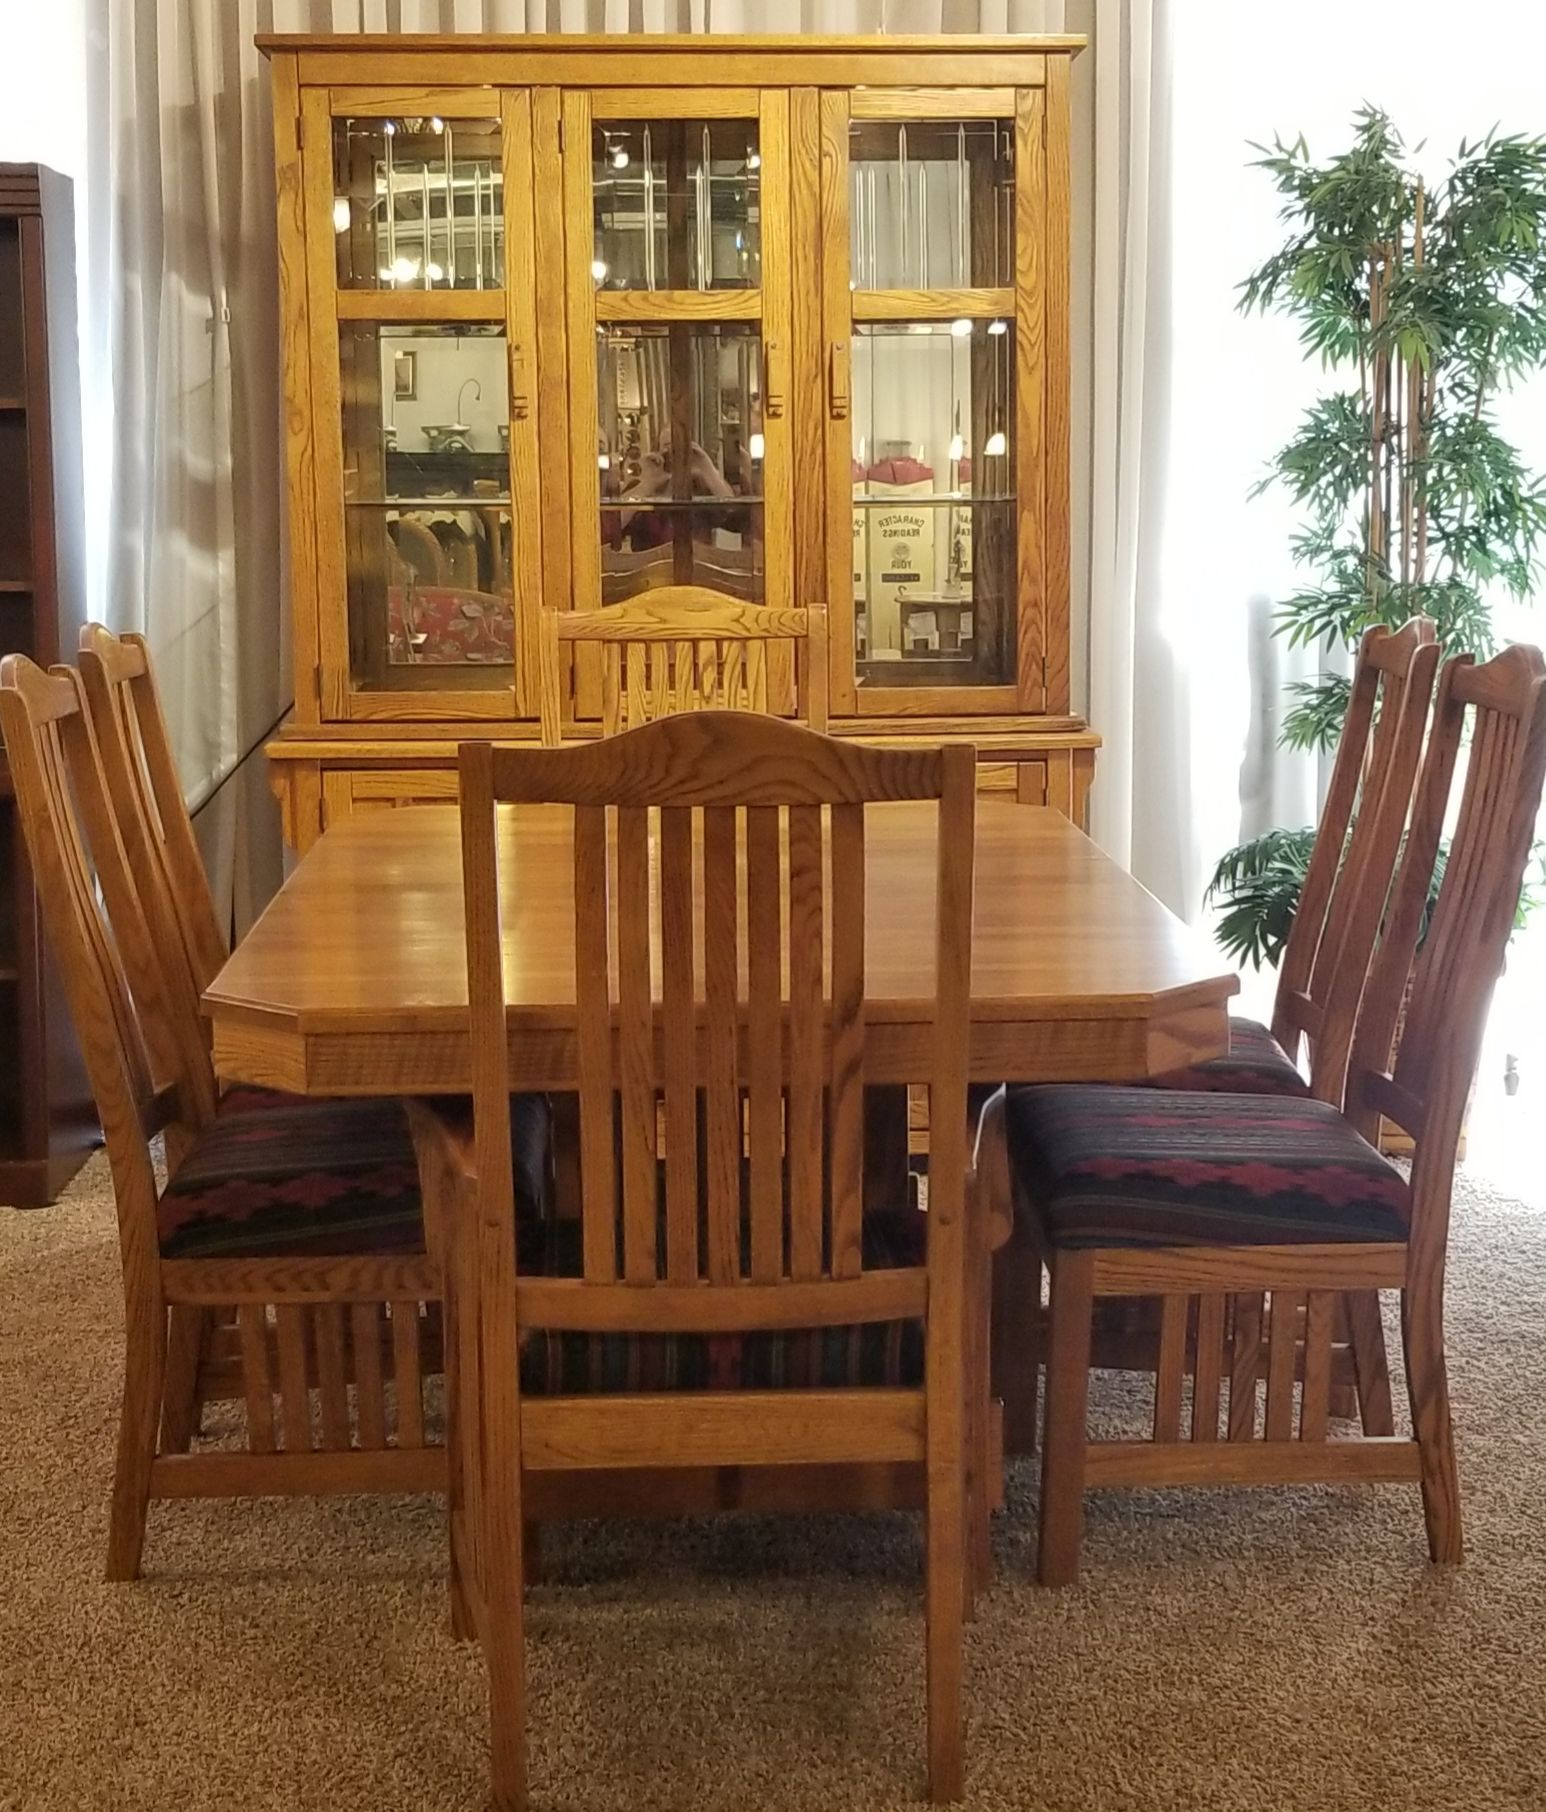 Oak Dining Room Set Interior Design 2019 02 22 16 17 46 Oak